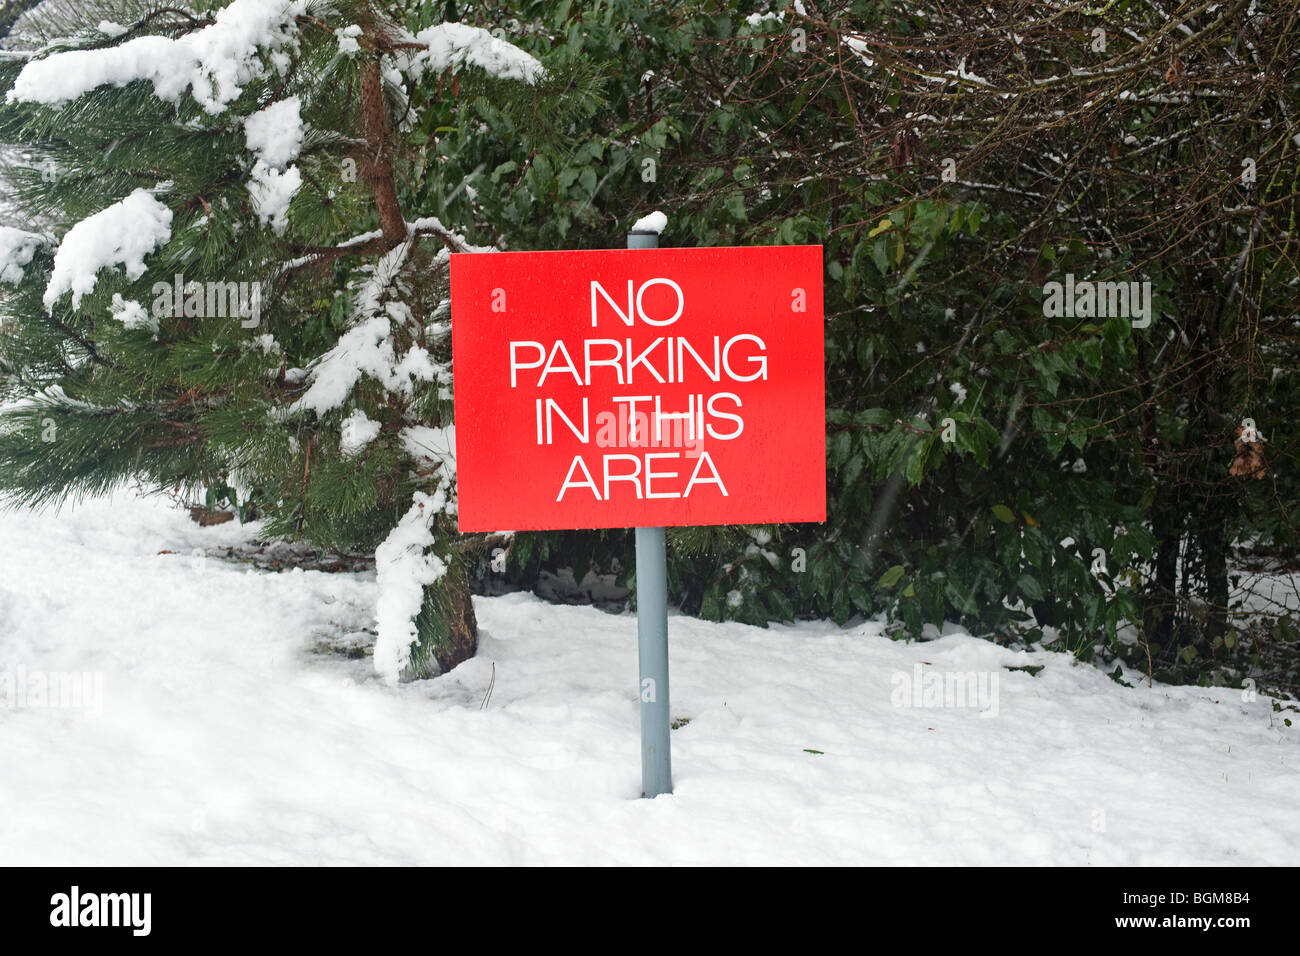 no parking sign in snow - Stock Image